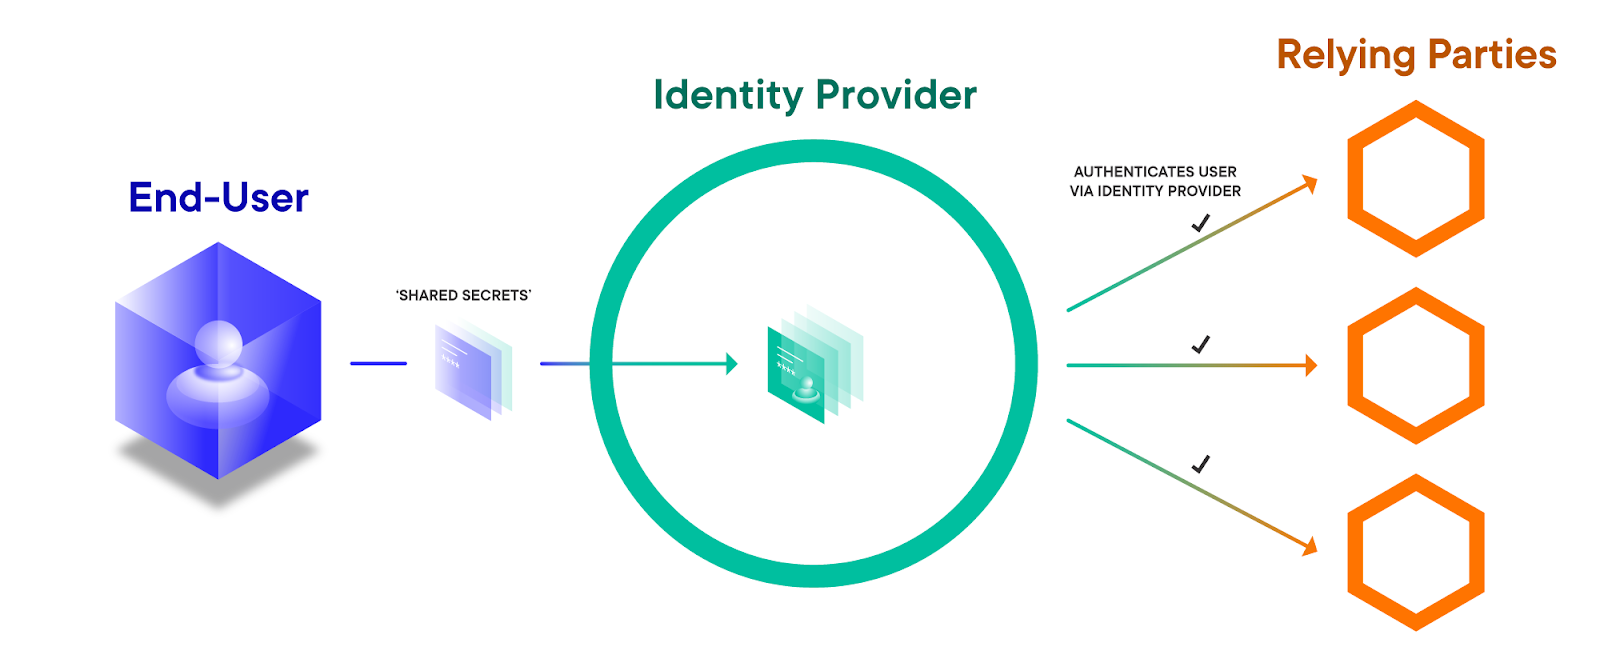 In today's OpenID Connect implementations, the Identity Provider mediates on behalf of the user